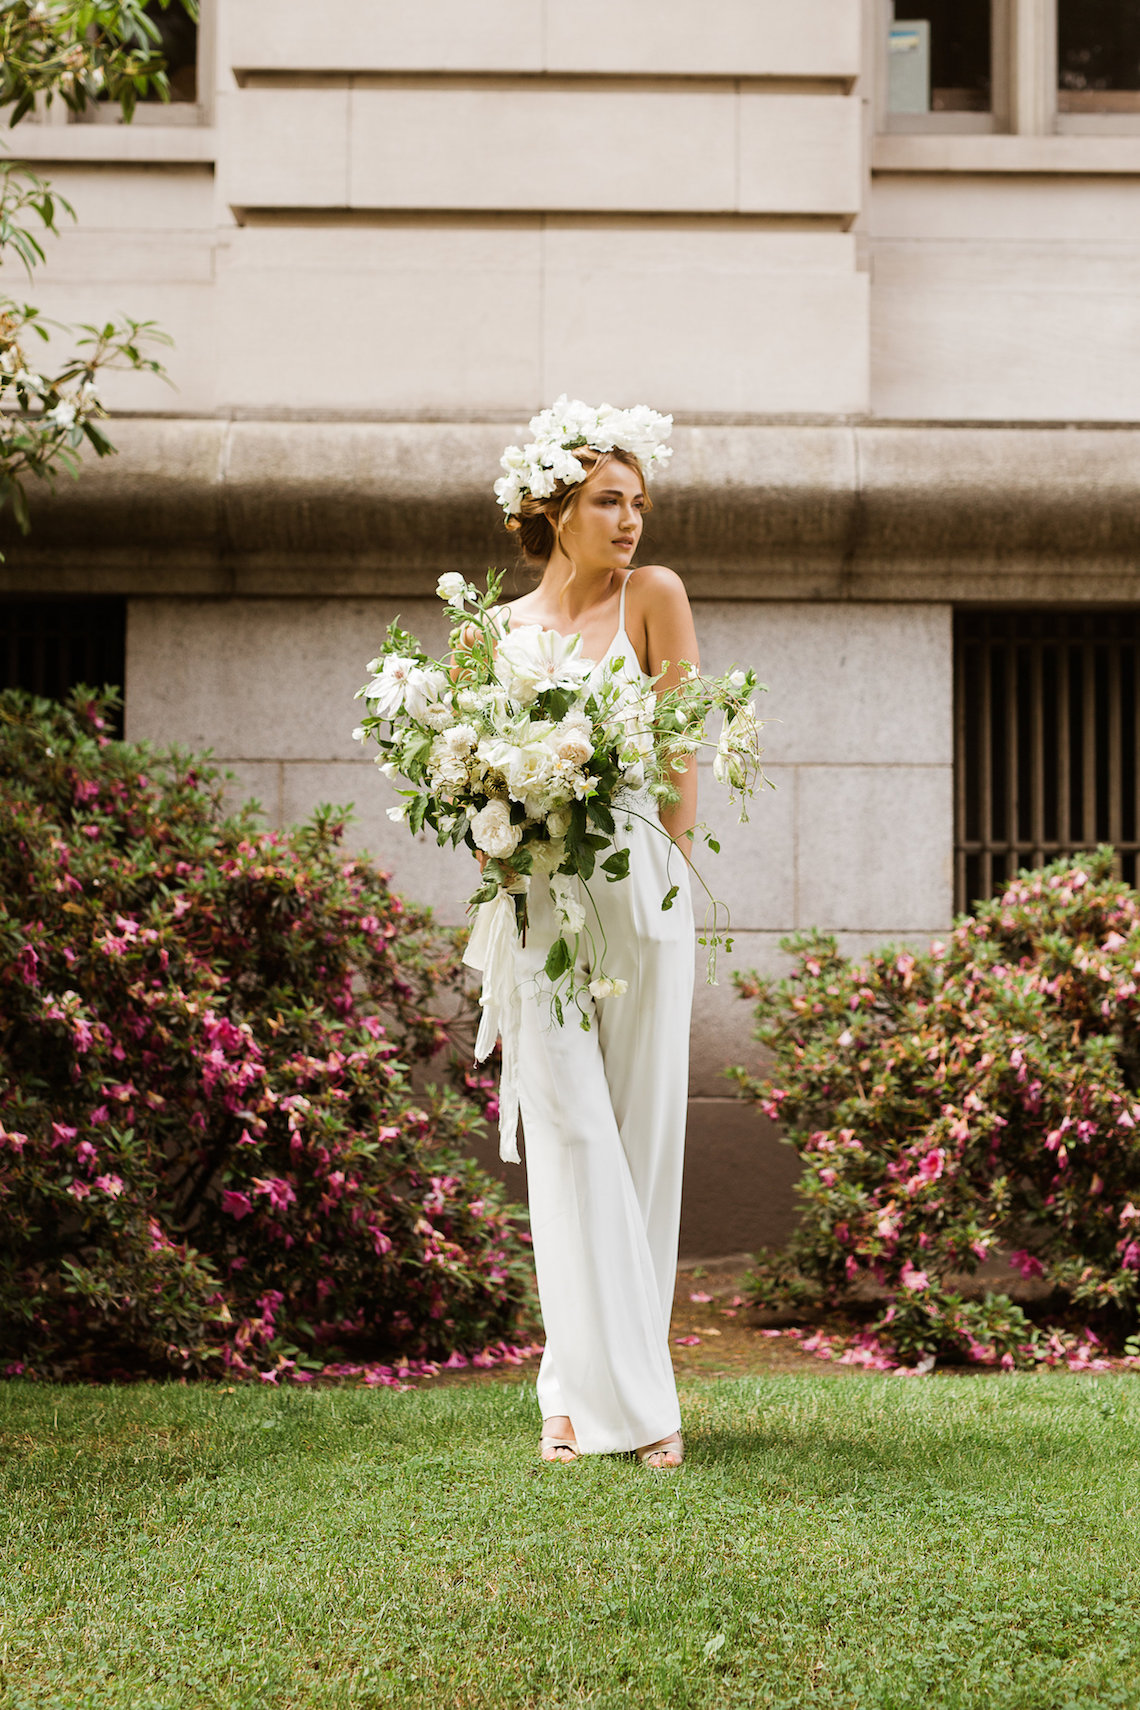 Cool Courthouse Wedding Inspiration Featuring A Bridal Jumpsuit | Rachel Birkhofer Photography 19